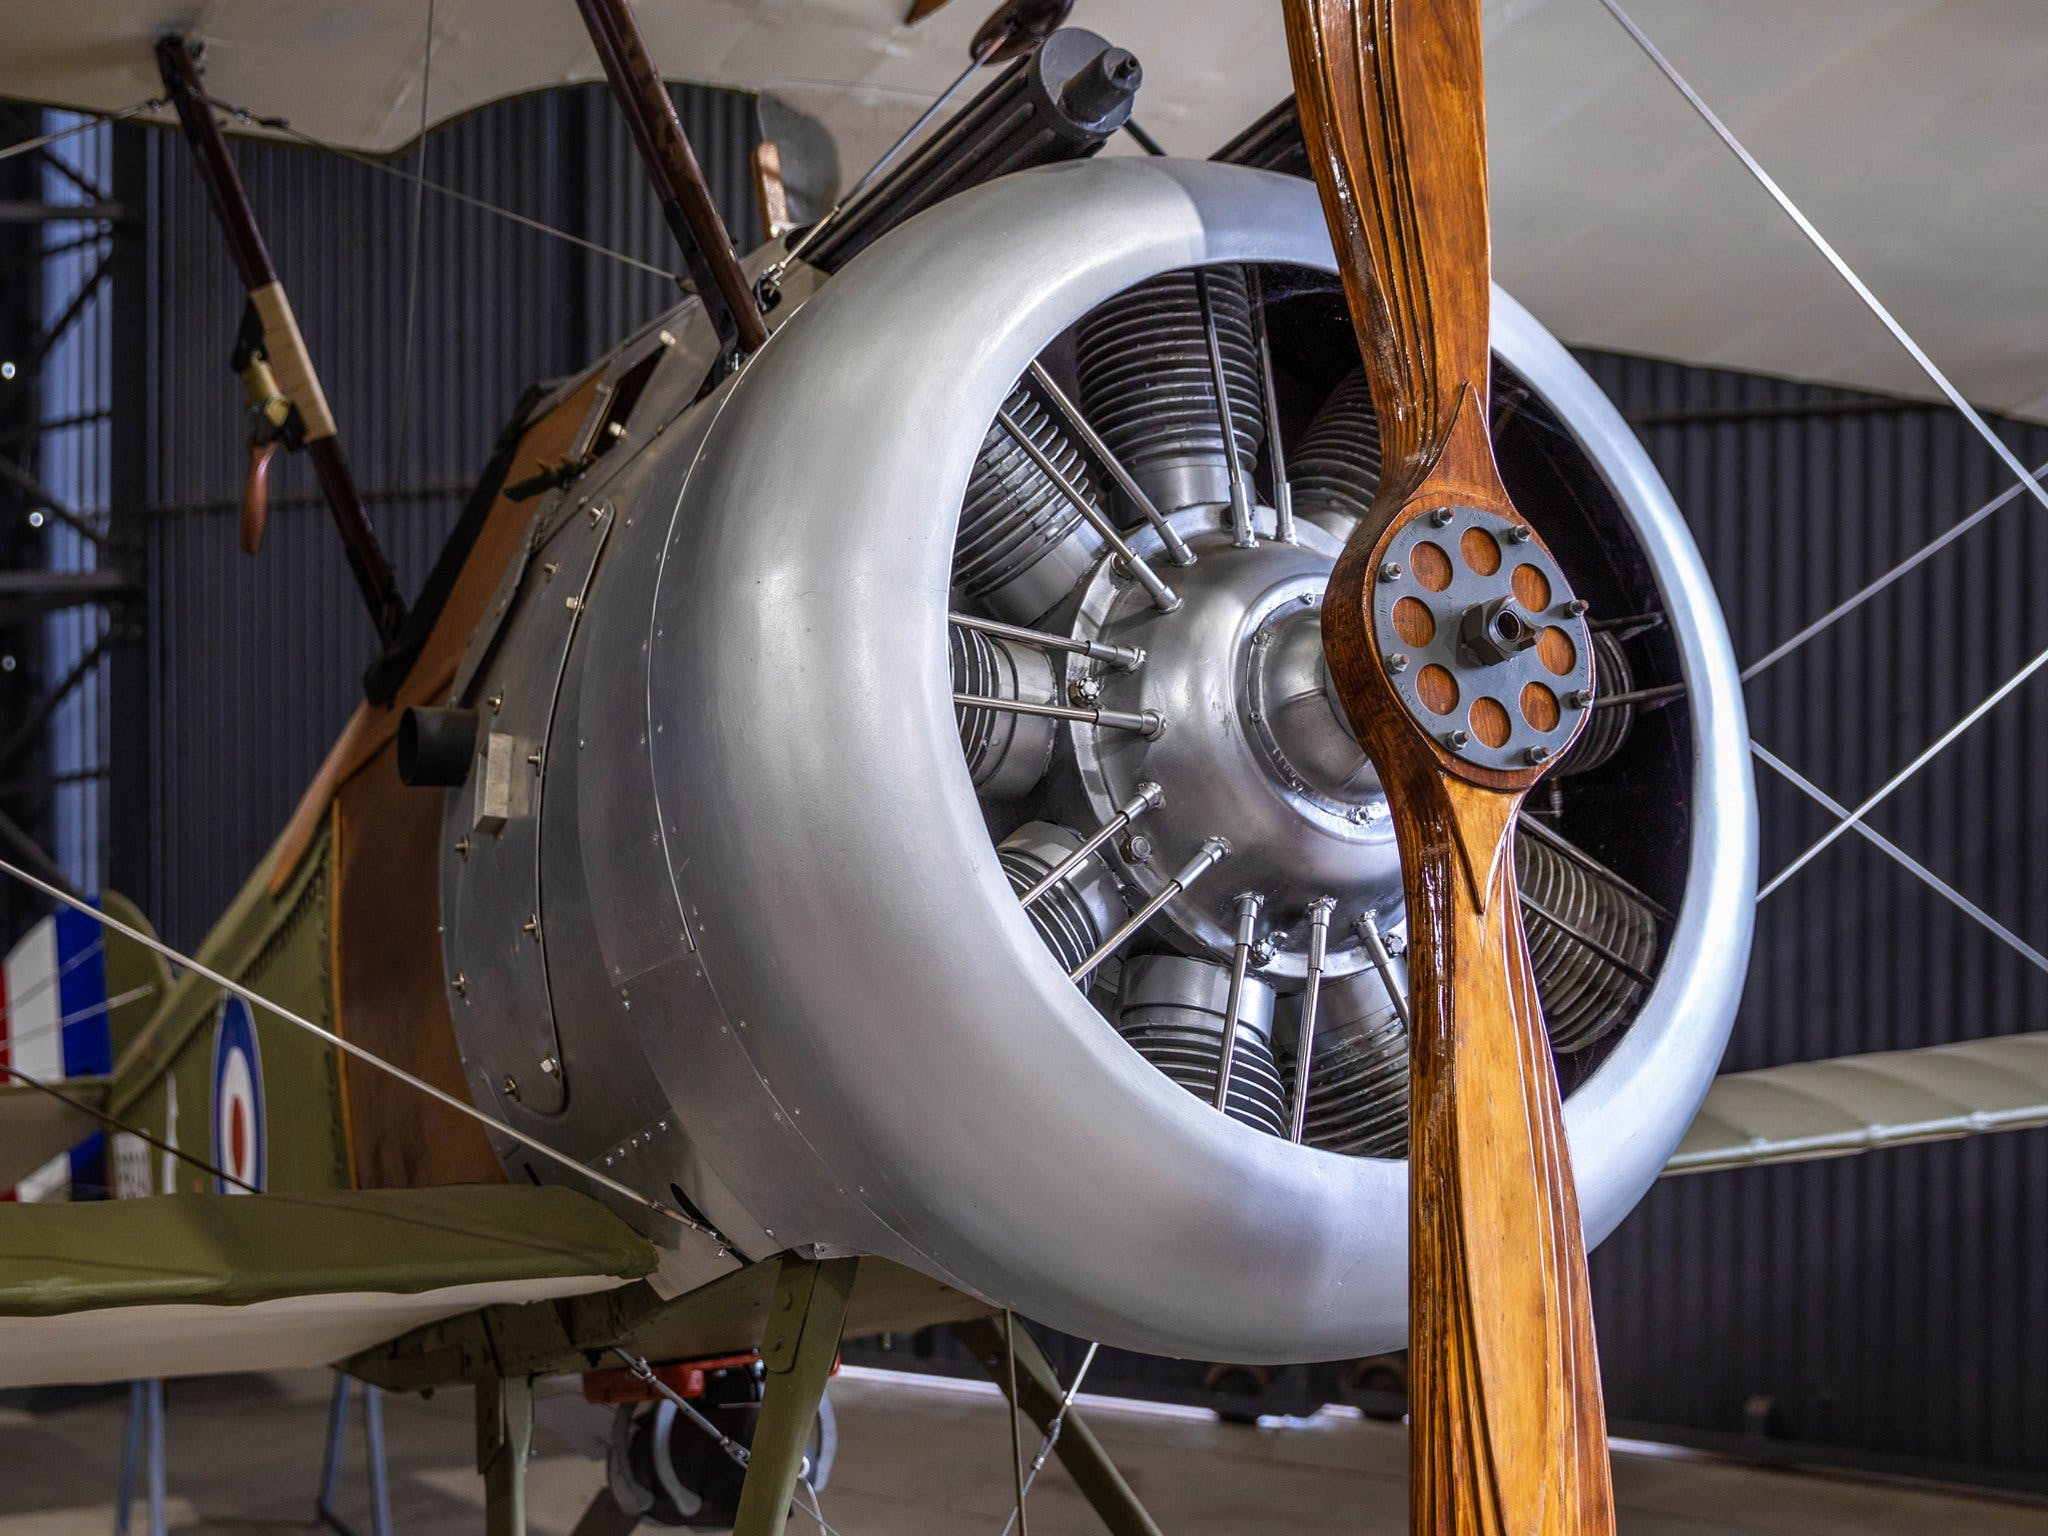 RAAF Amberley Aviation Heritage Centre - Accommodation Tasmania